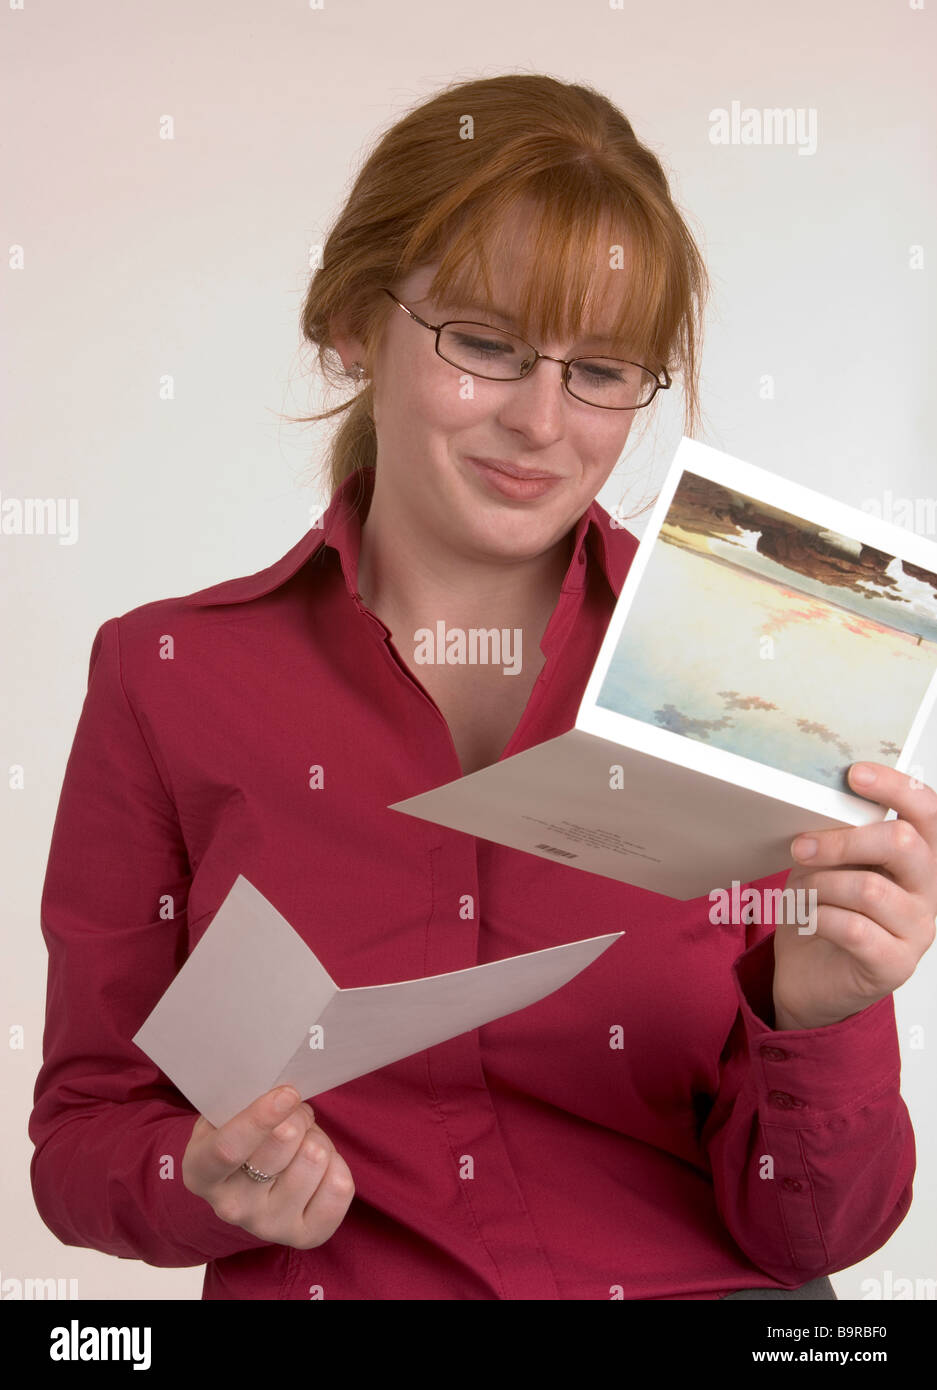 A woman reading a card that has conveyed some happy news that has made her smile - Stock Image